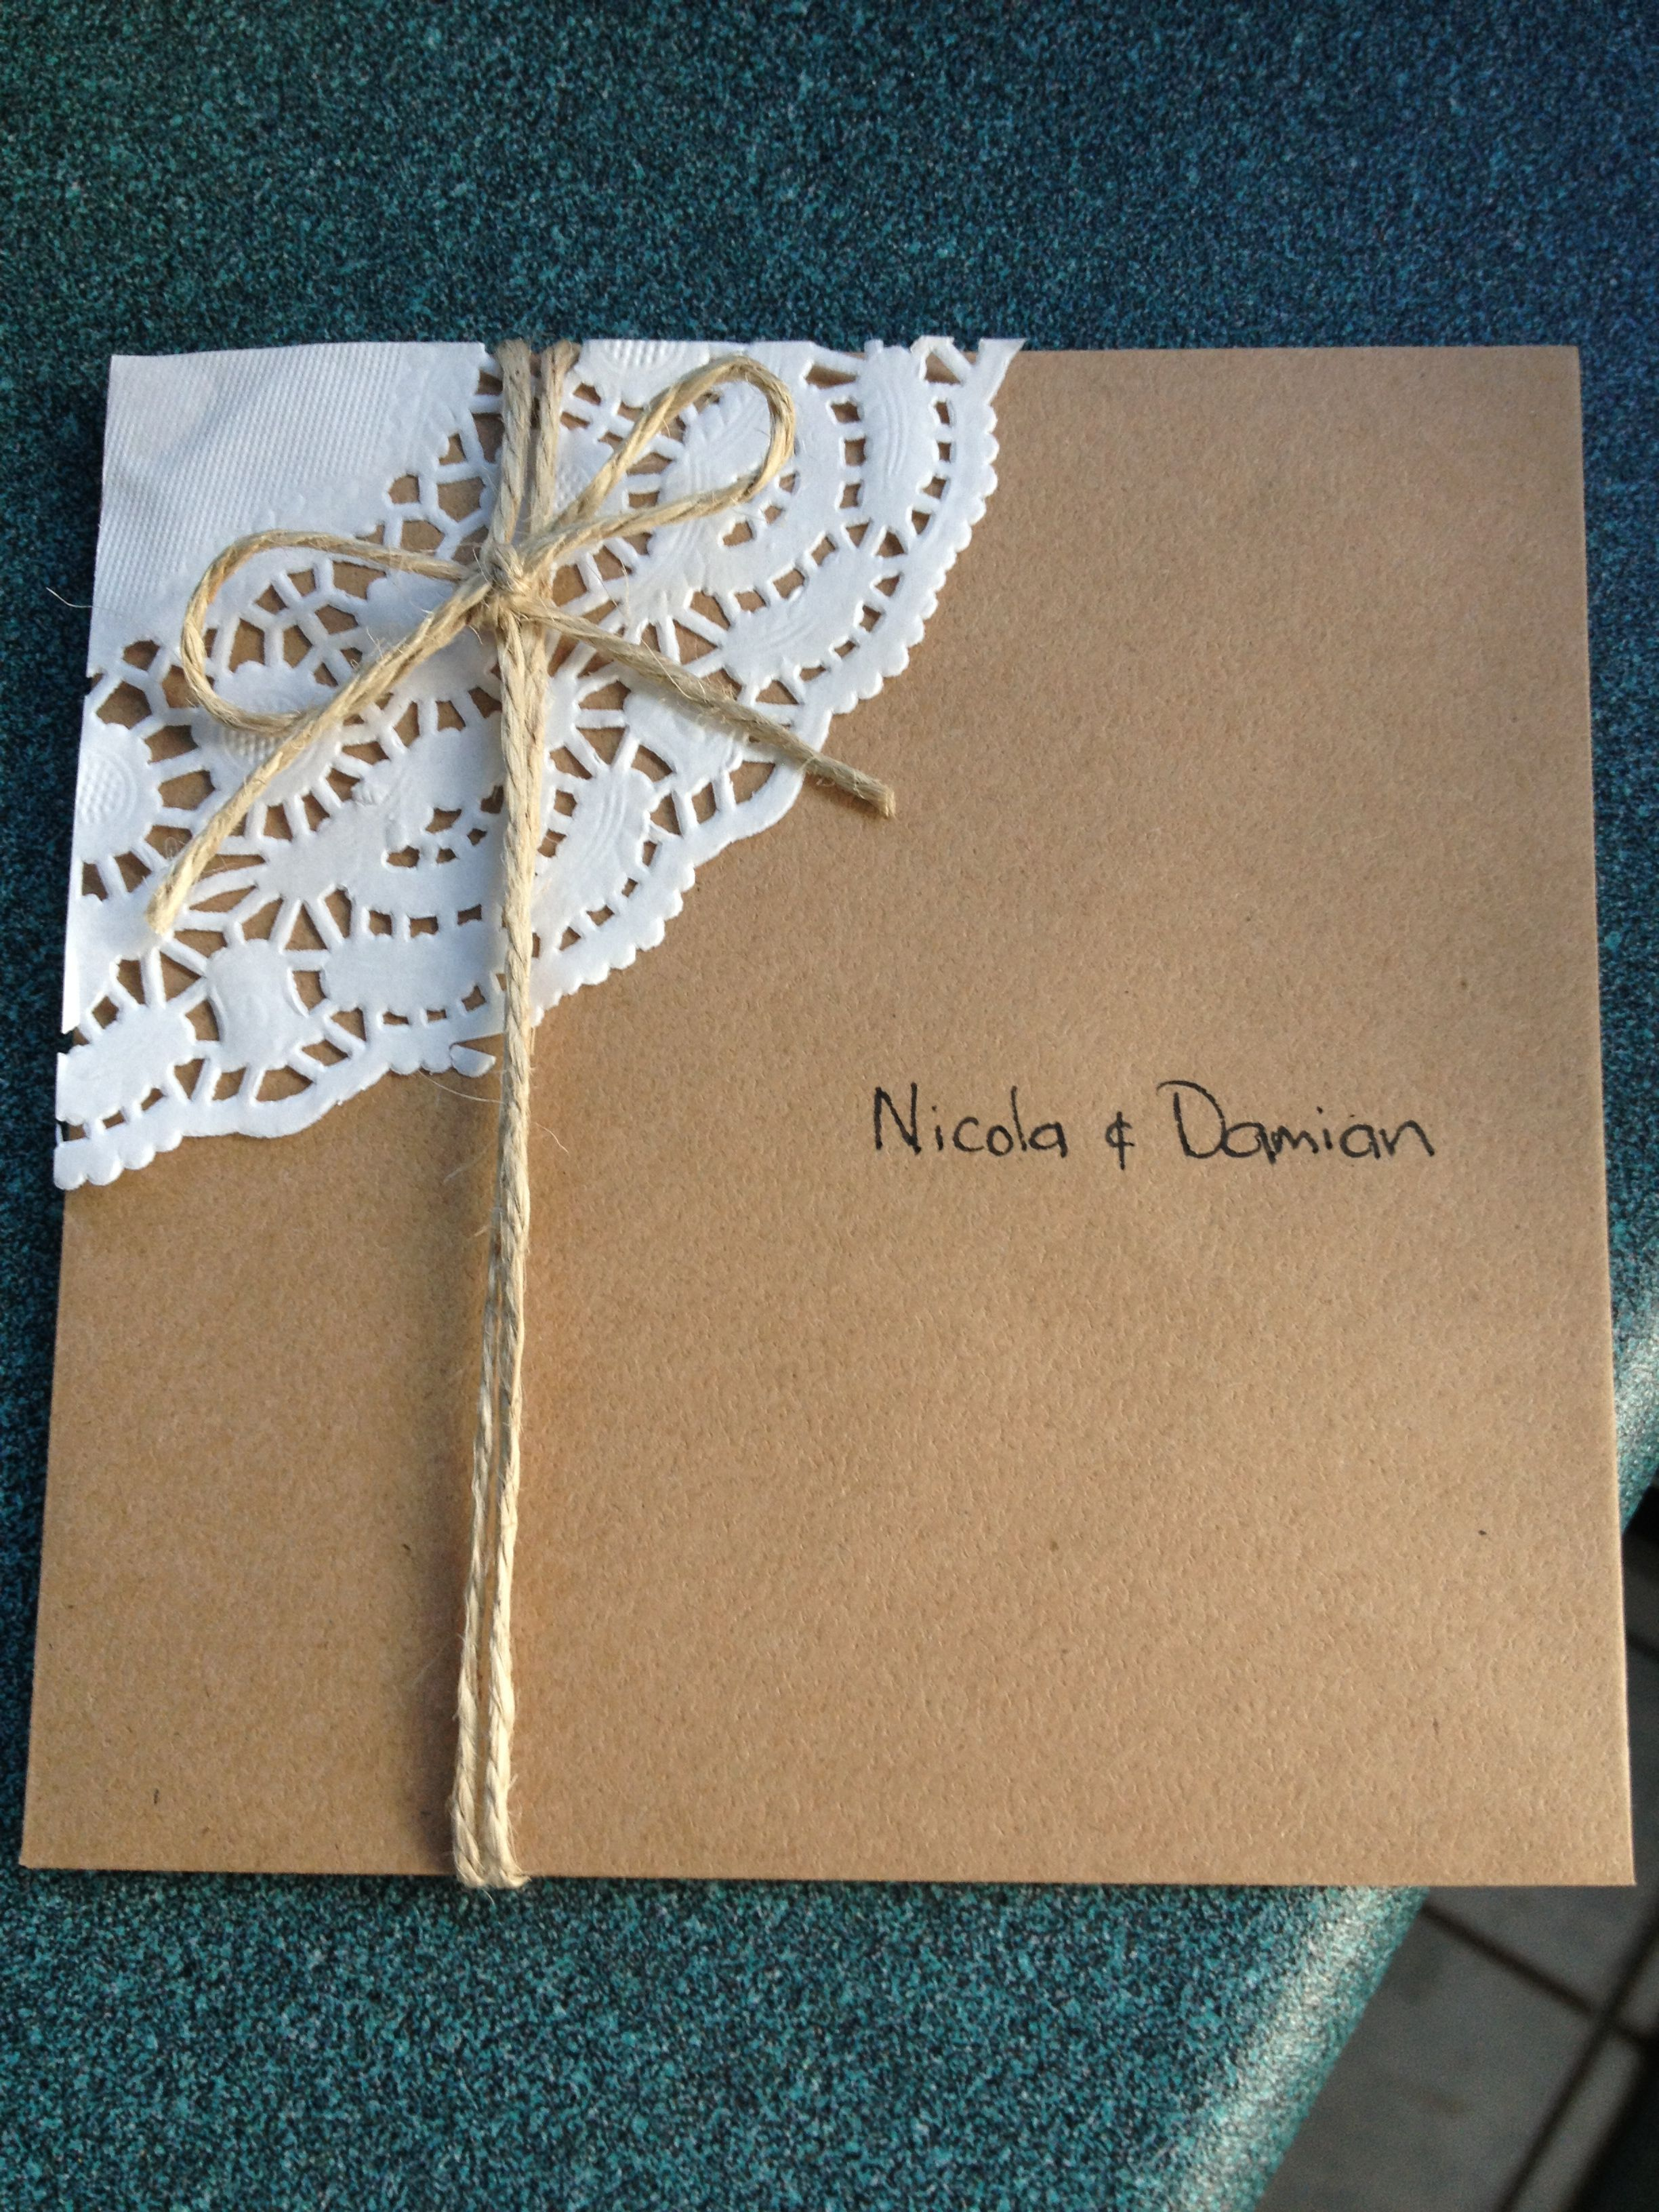 My Very Own Home Made Wedding Invitations Made With Love